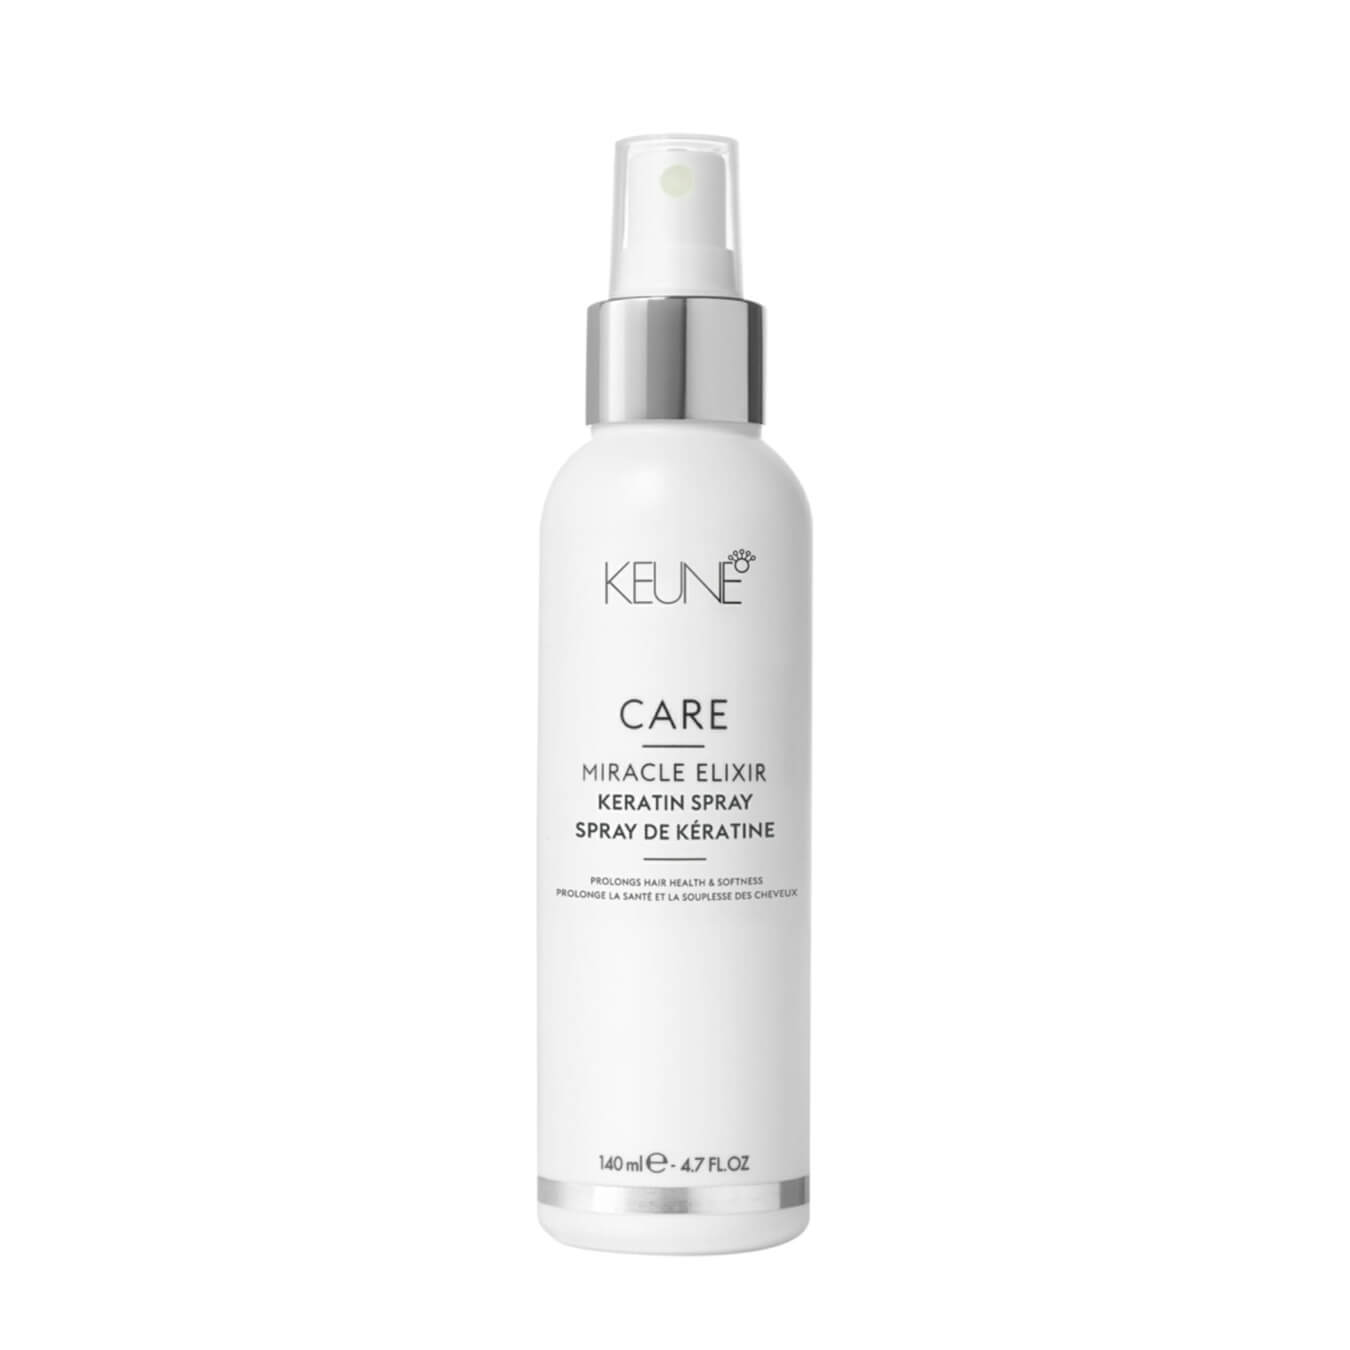 Kauf Keune Care Miracle Elixir Keratin Spray 140ml